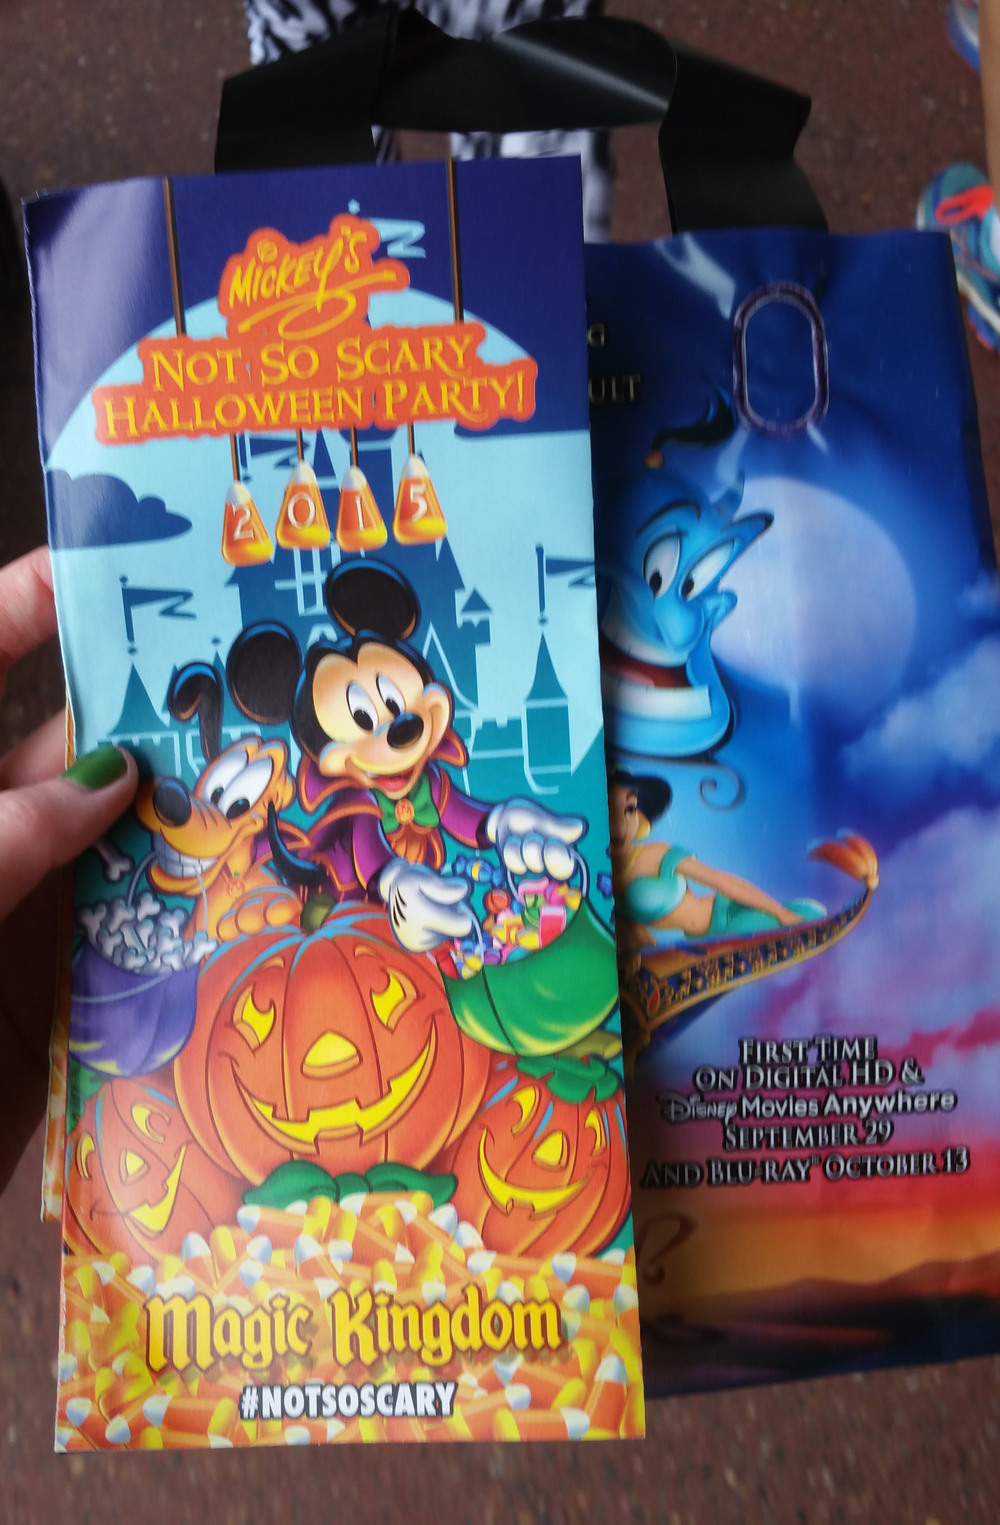 Entering the park we were handed a  Mickey's Not-So-Scary Halloween Party park map and also a bag for candy! The park map had the places to collect candy marked, I wasn't with my kids this night so I collected candy to take home to them :)